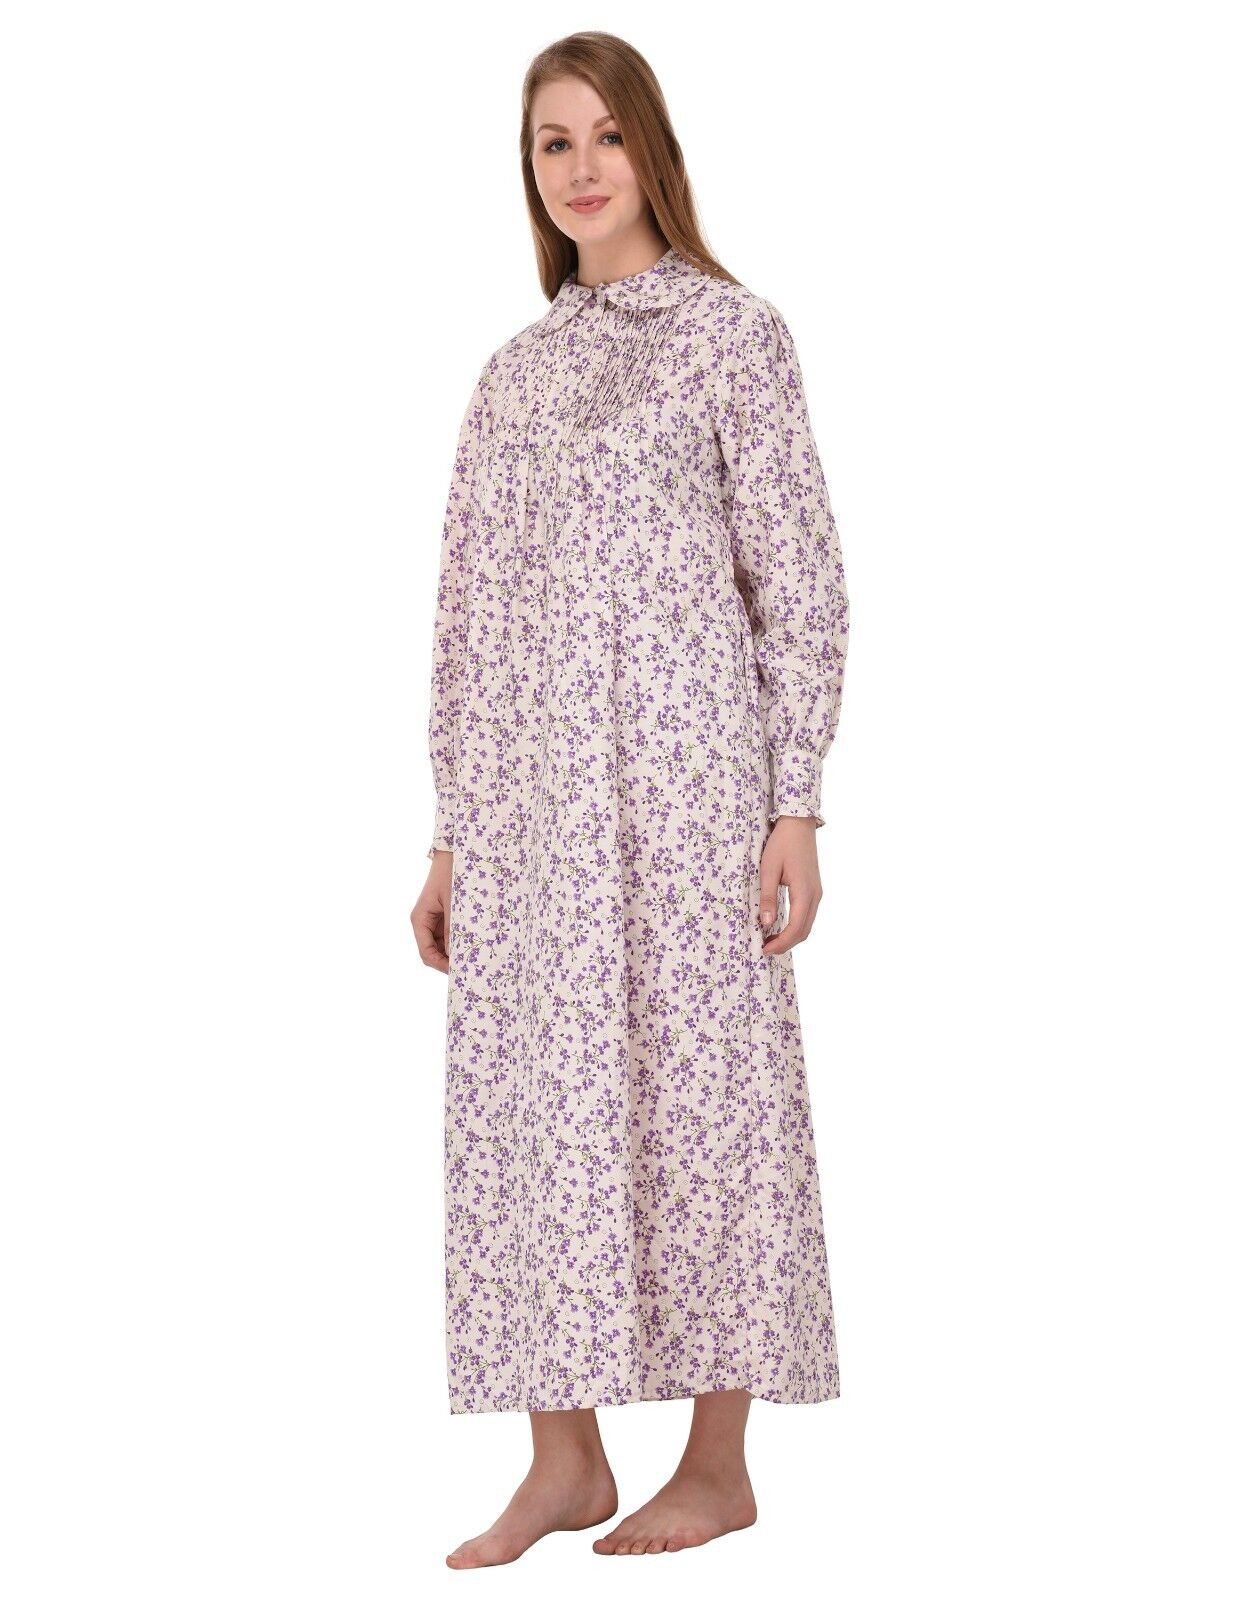 Peter Pan Collar Printed Nightdress   Cotton Lane